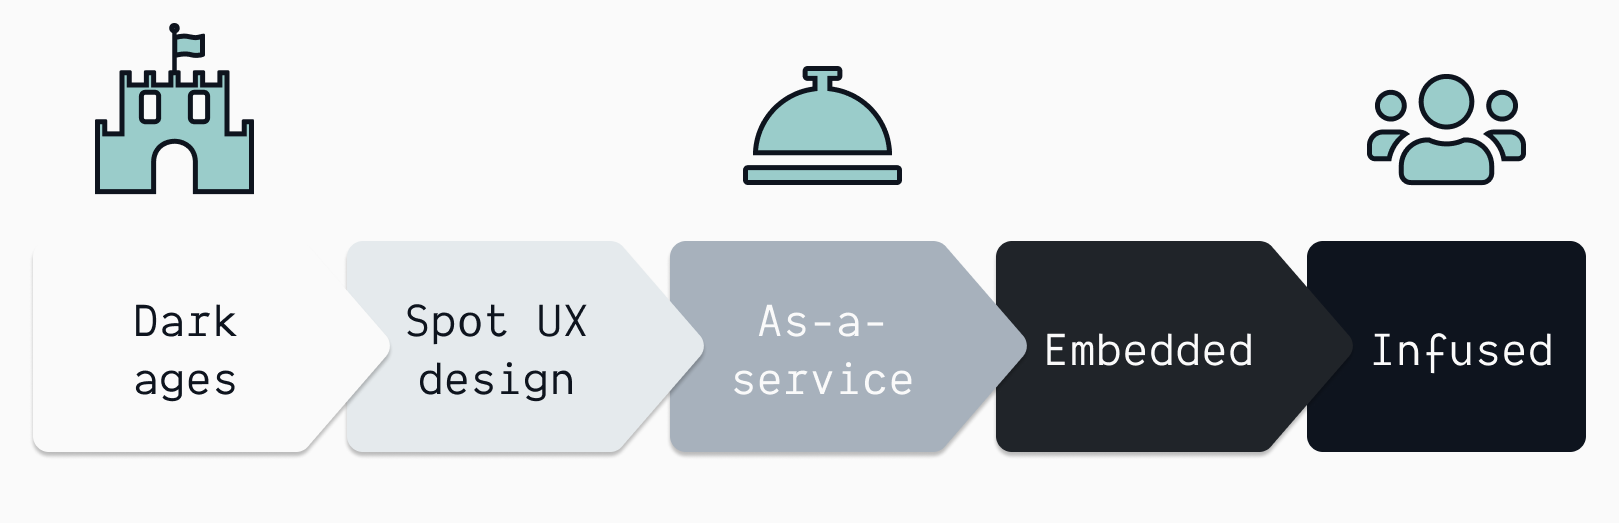 The UX design maturity levels in an organization